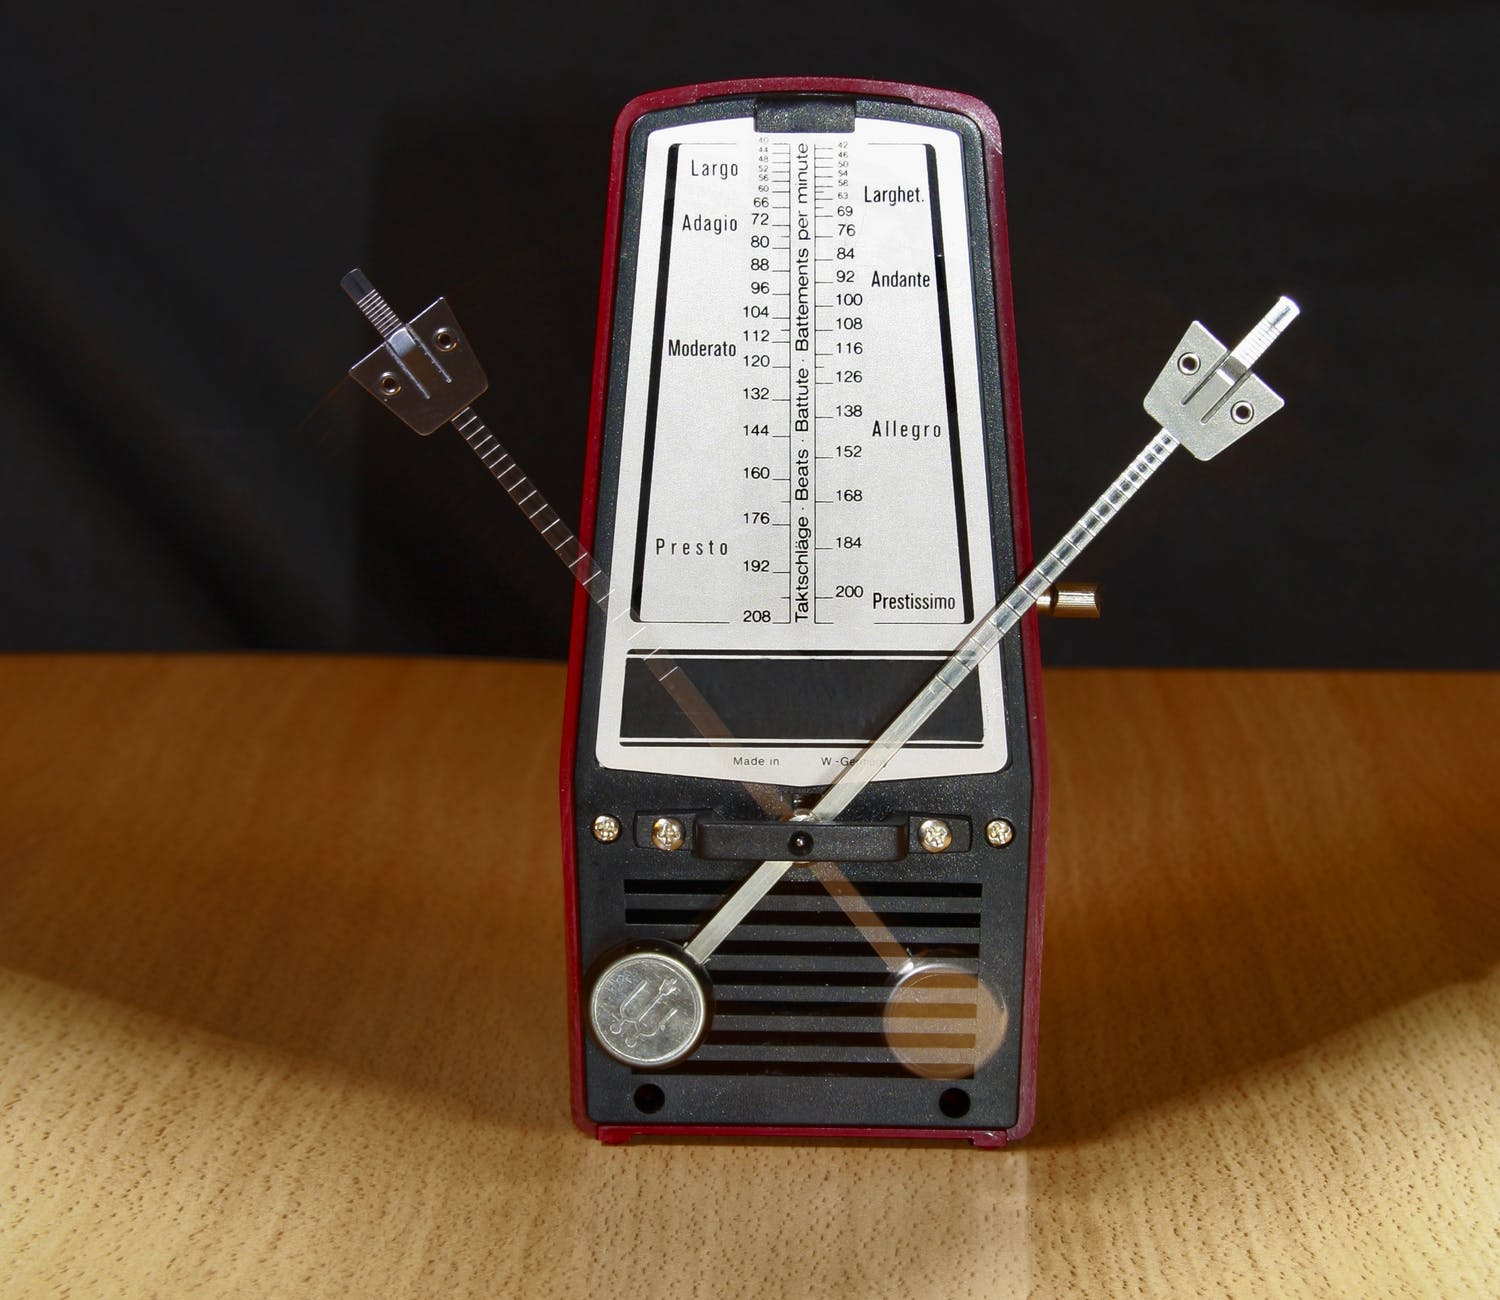 metronome-clock-music-music-production-162550.jpeg